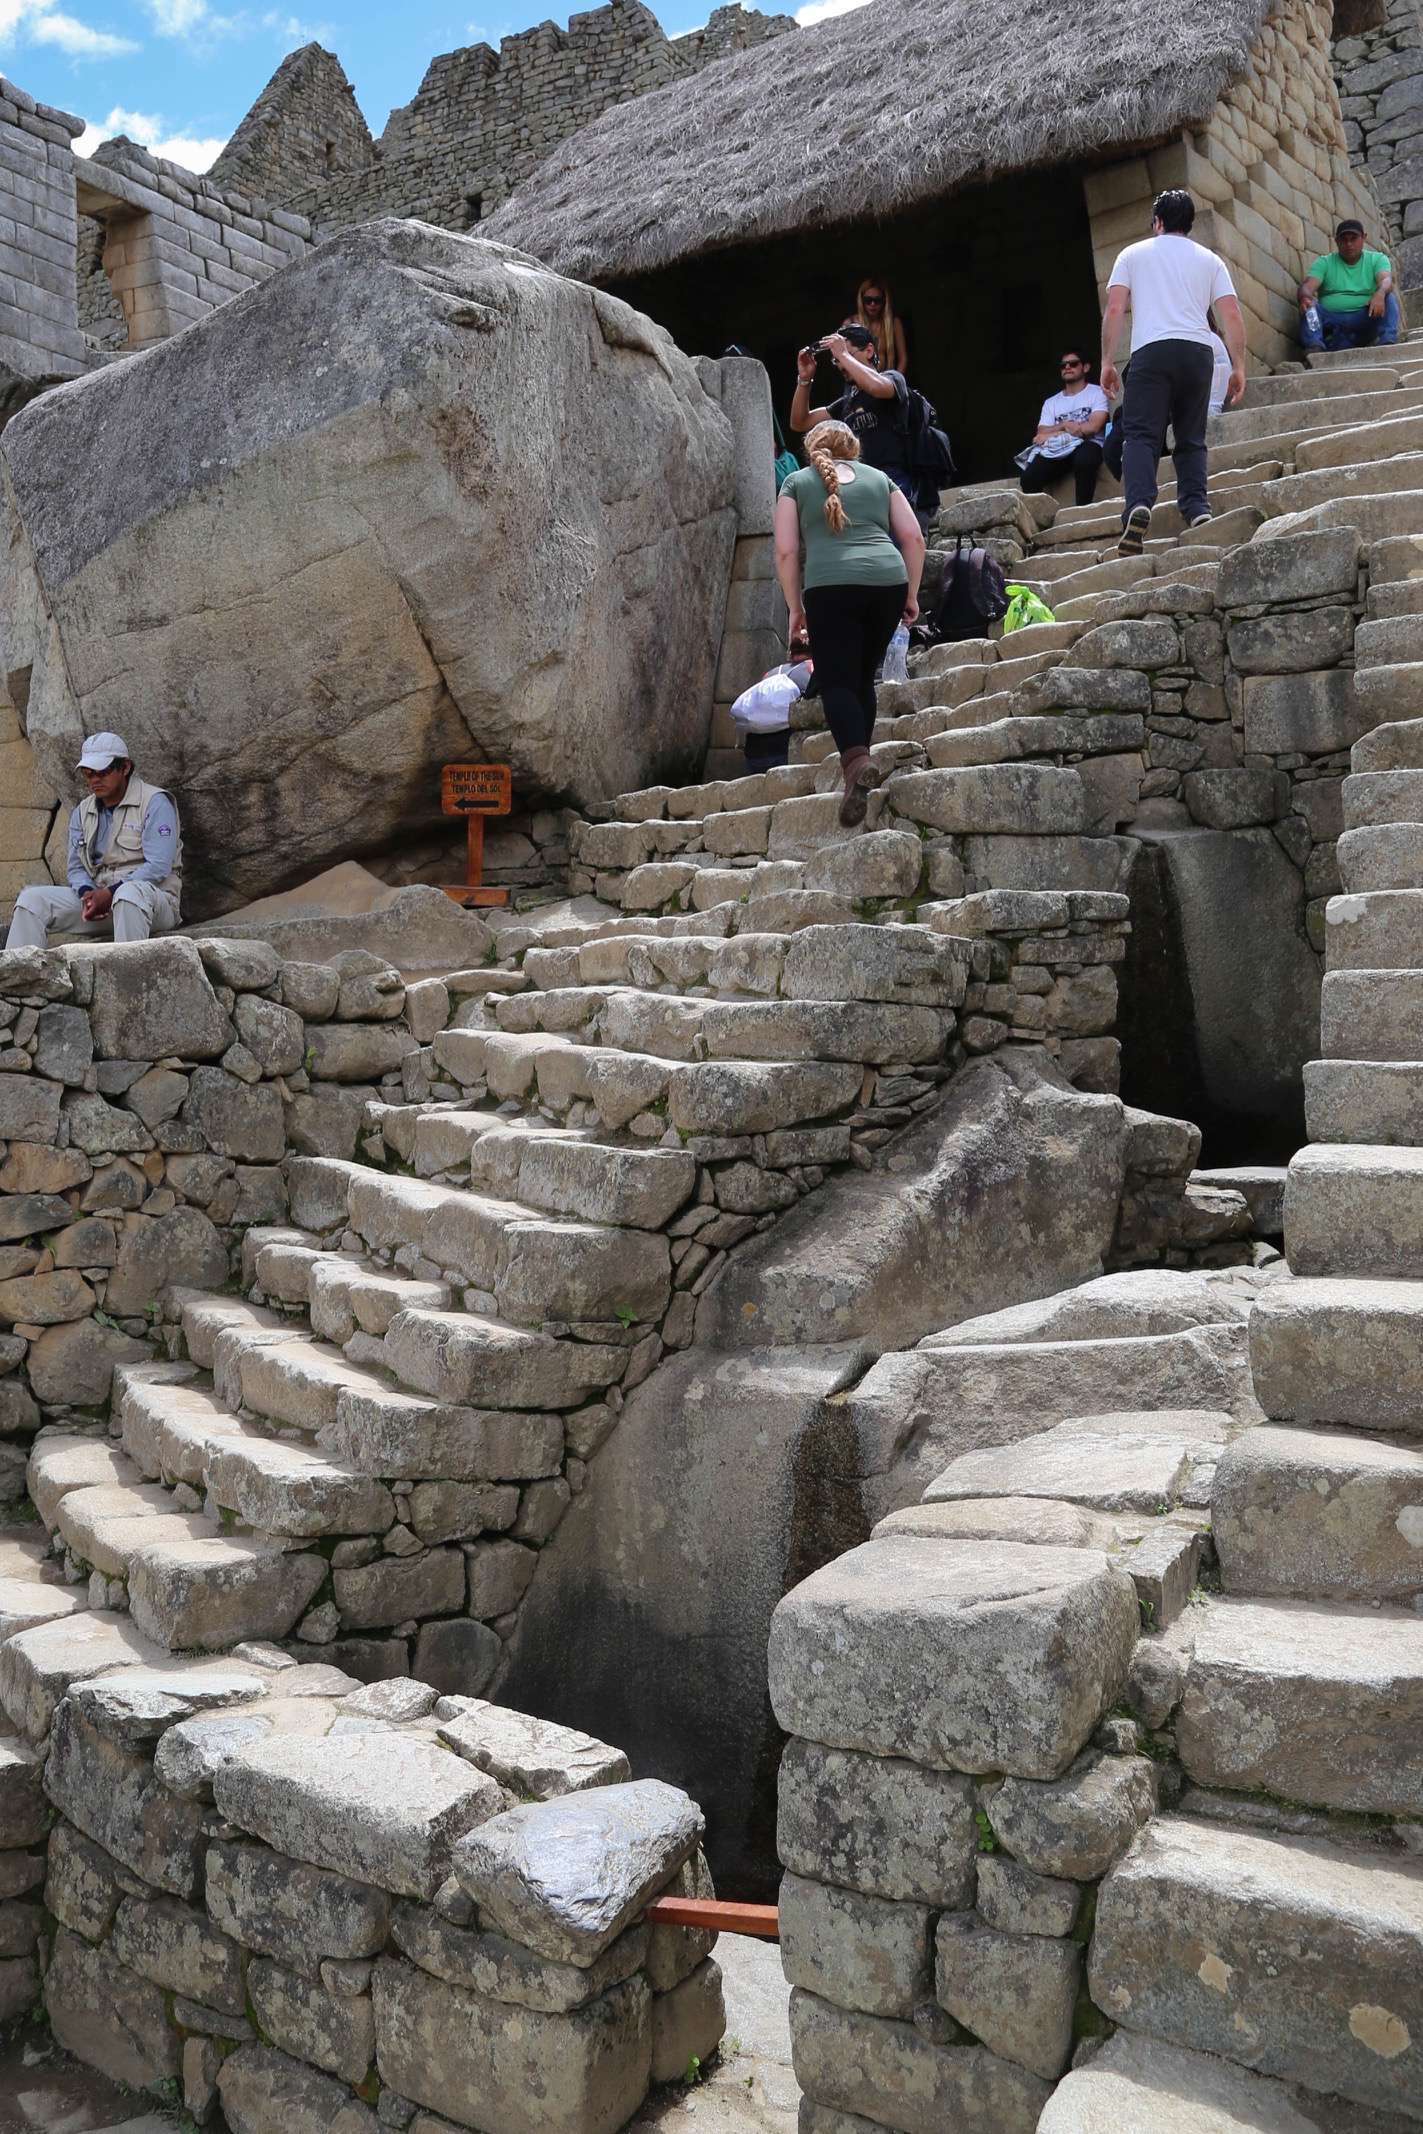 Engineering, construction and hydrology were just a few of the highly developed skills the Incas employed when building Machu Picchu. Here, center right, a small fountain, one of 16 at Machu Picchu, provided water to those who lived here.